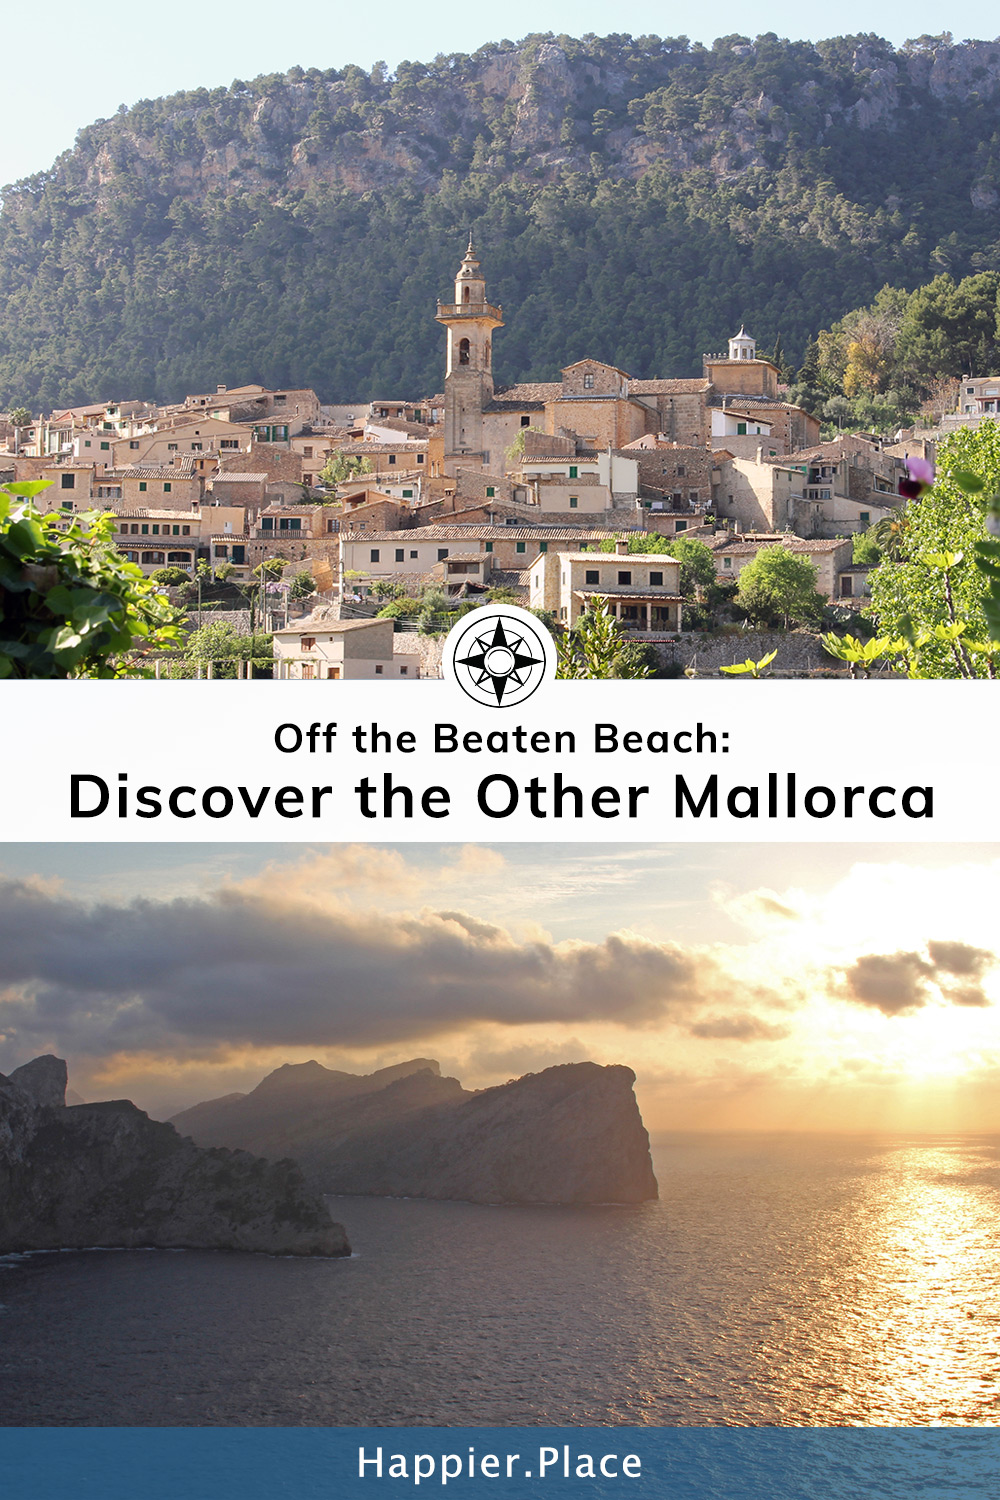 Where Mountains Meet the Sea: The Quieter Side of Mallorca (Balearic Islands, Spain)